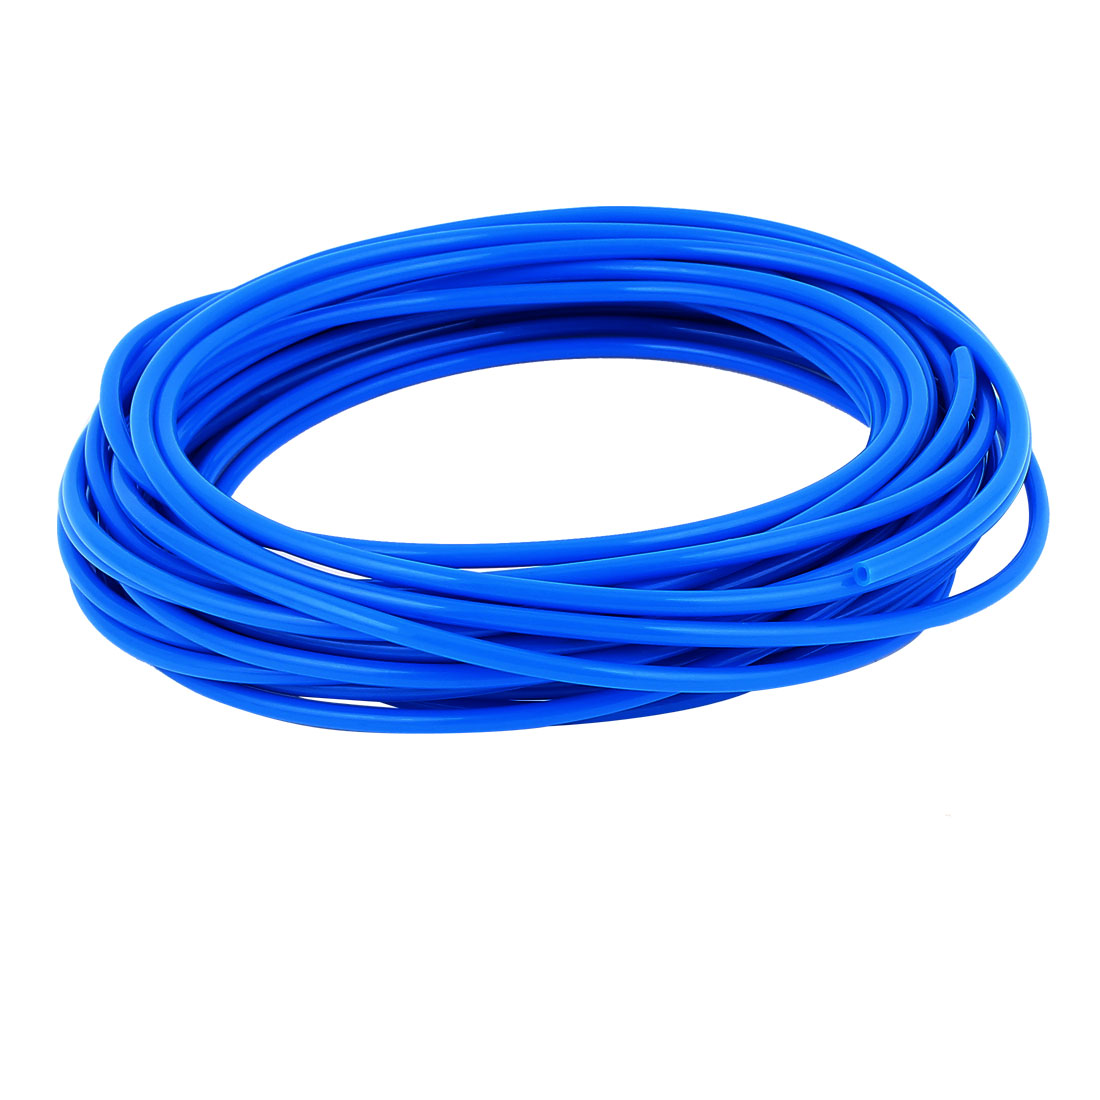 4mm x 2.5mm Fleaxible PU Tube Pneumatic Hose Blue 10M Length